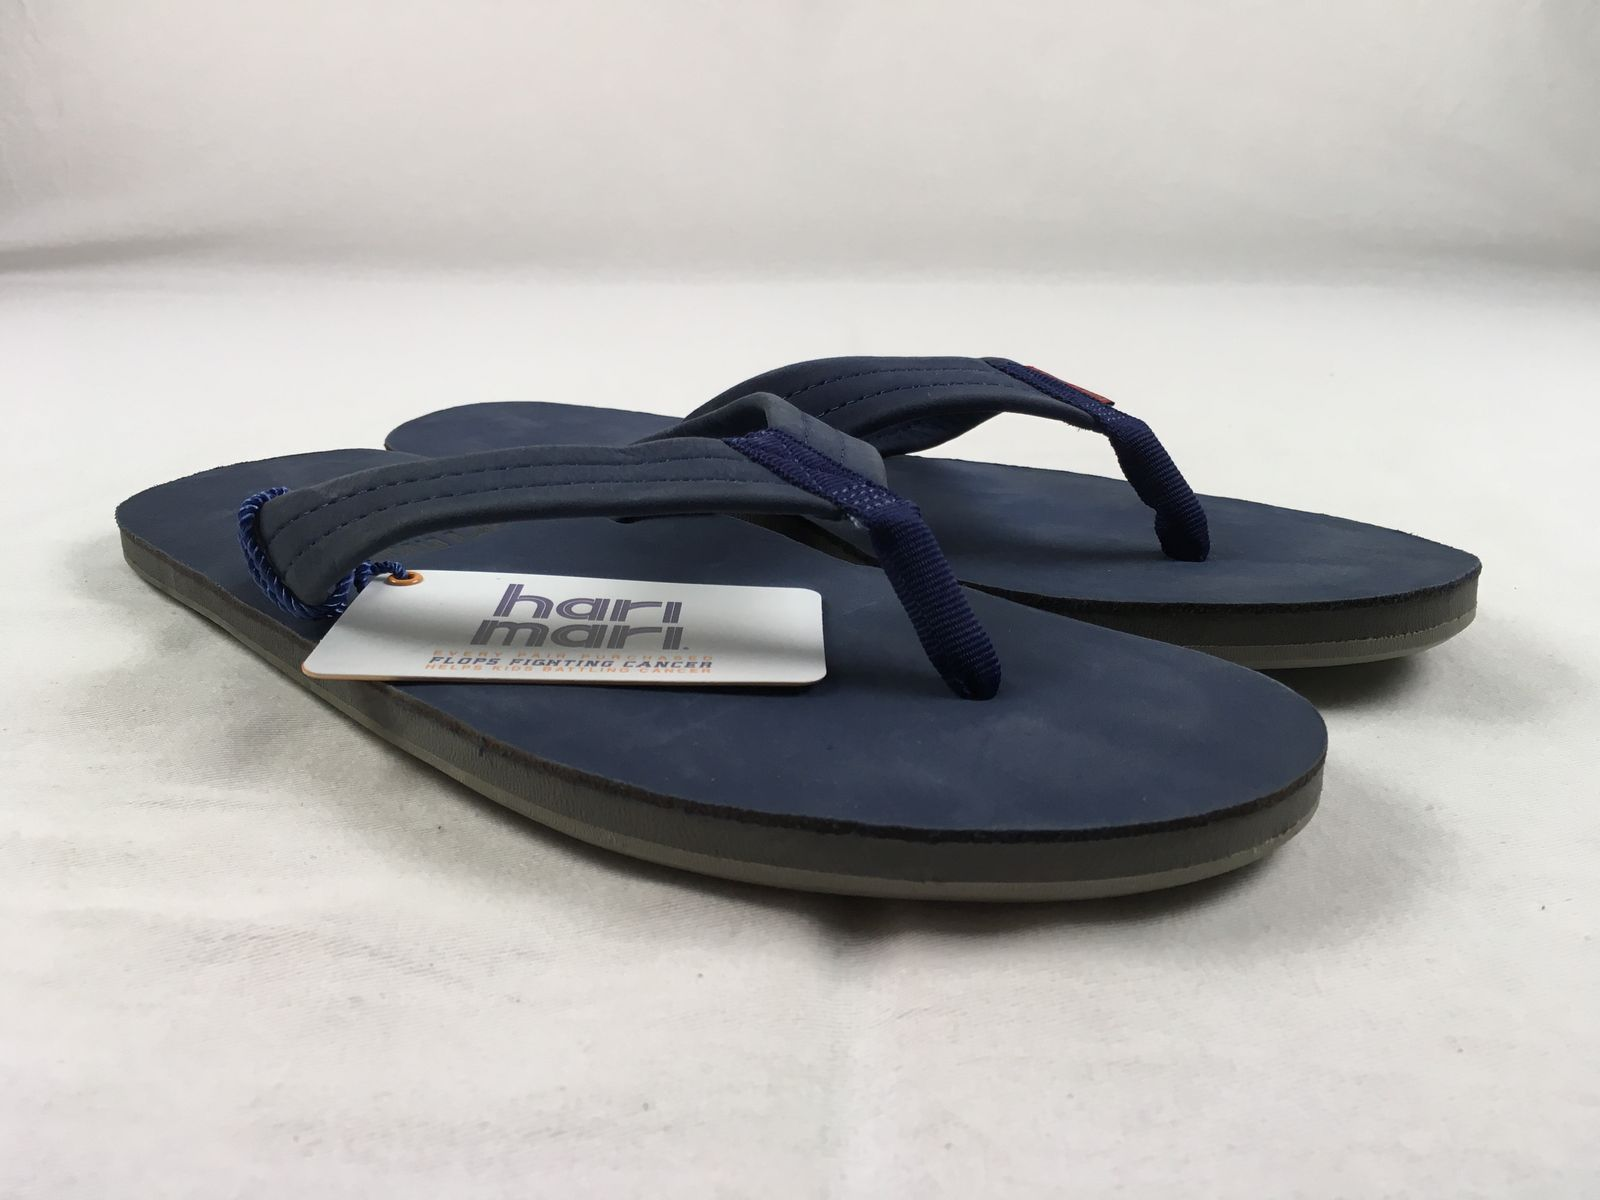 8f9f2c5a2b6 NEW Hari Hari Hari Mari Men s Fields - Navy blue Sandals   Flip Flops (Men s